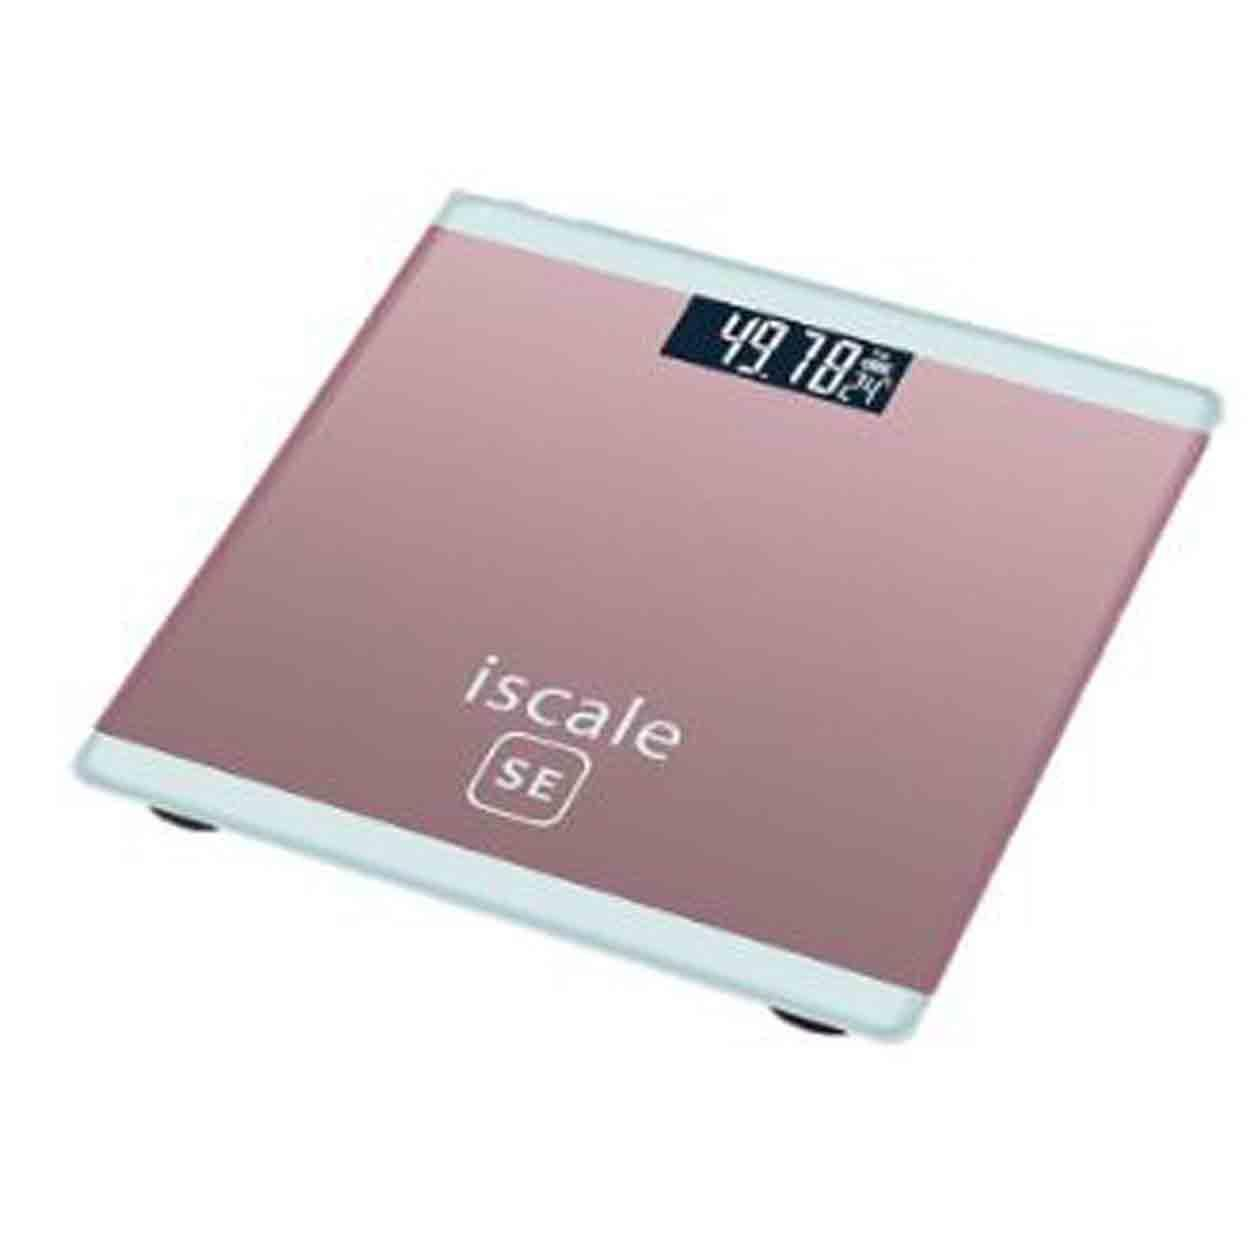 180kg LCD Electronic Digital Display Tempered Body Weighing Scale Battery Operated (Pink)